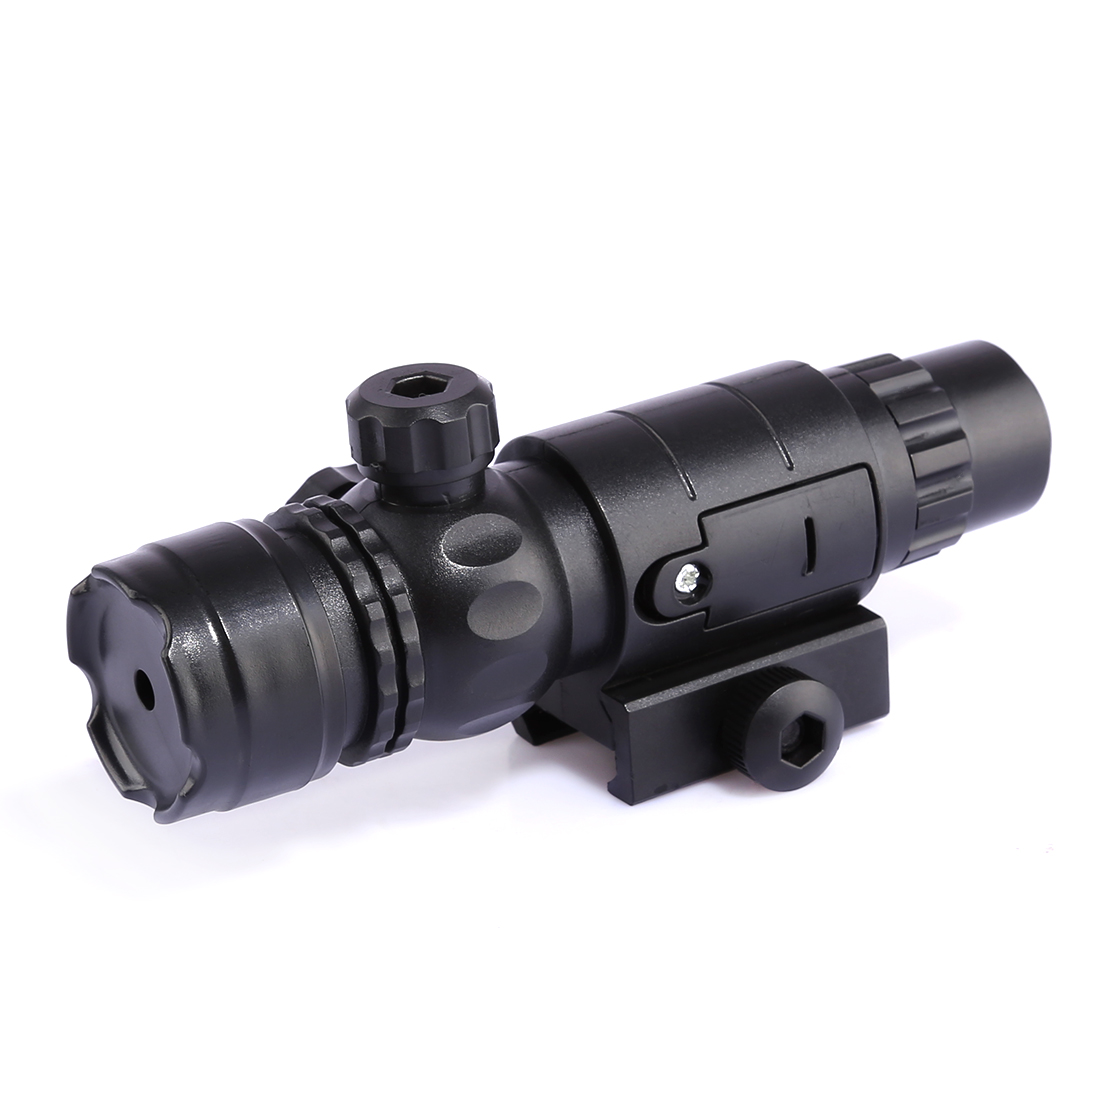 Tactical Plastic Adjustable Infrared Laser Light For Nerf Black Front Tube Decorative Paintball Accessories